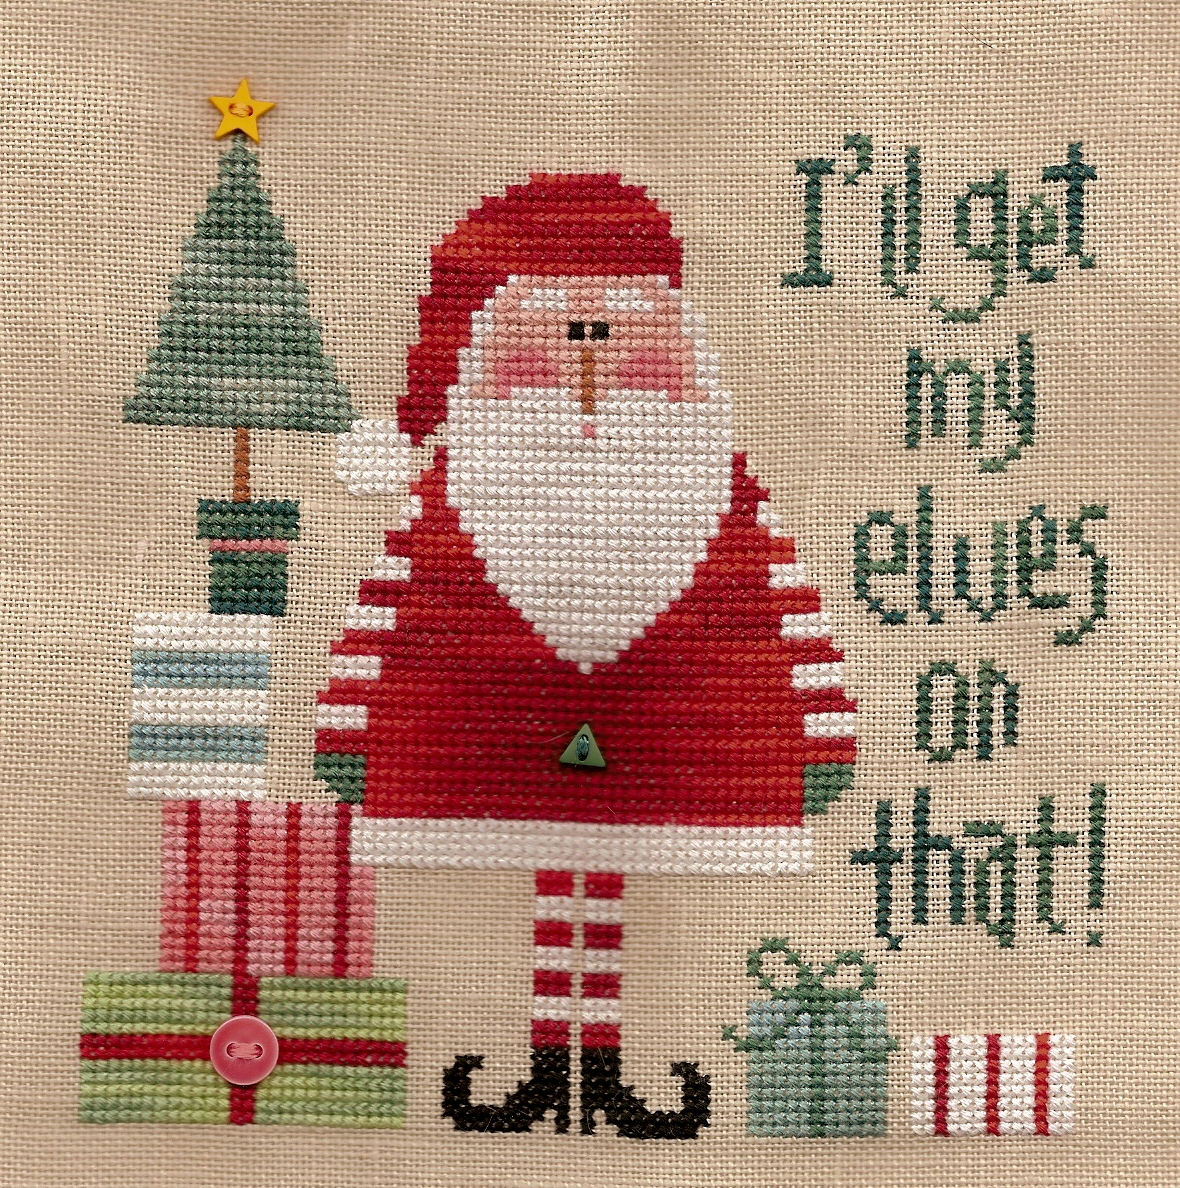 lizzie kates cross stitch